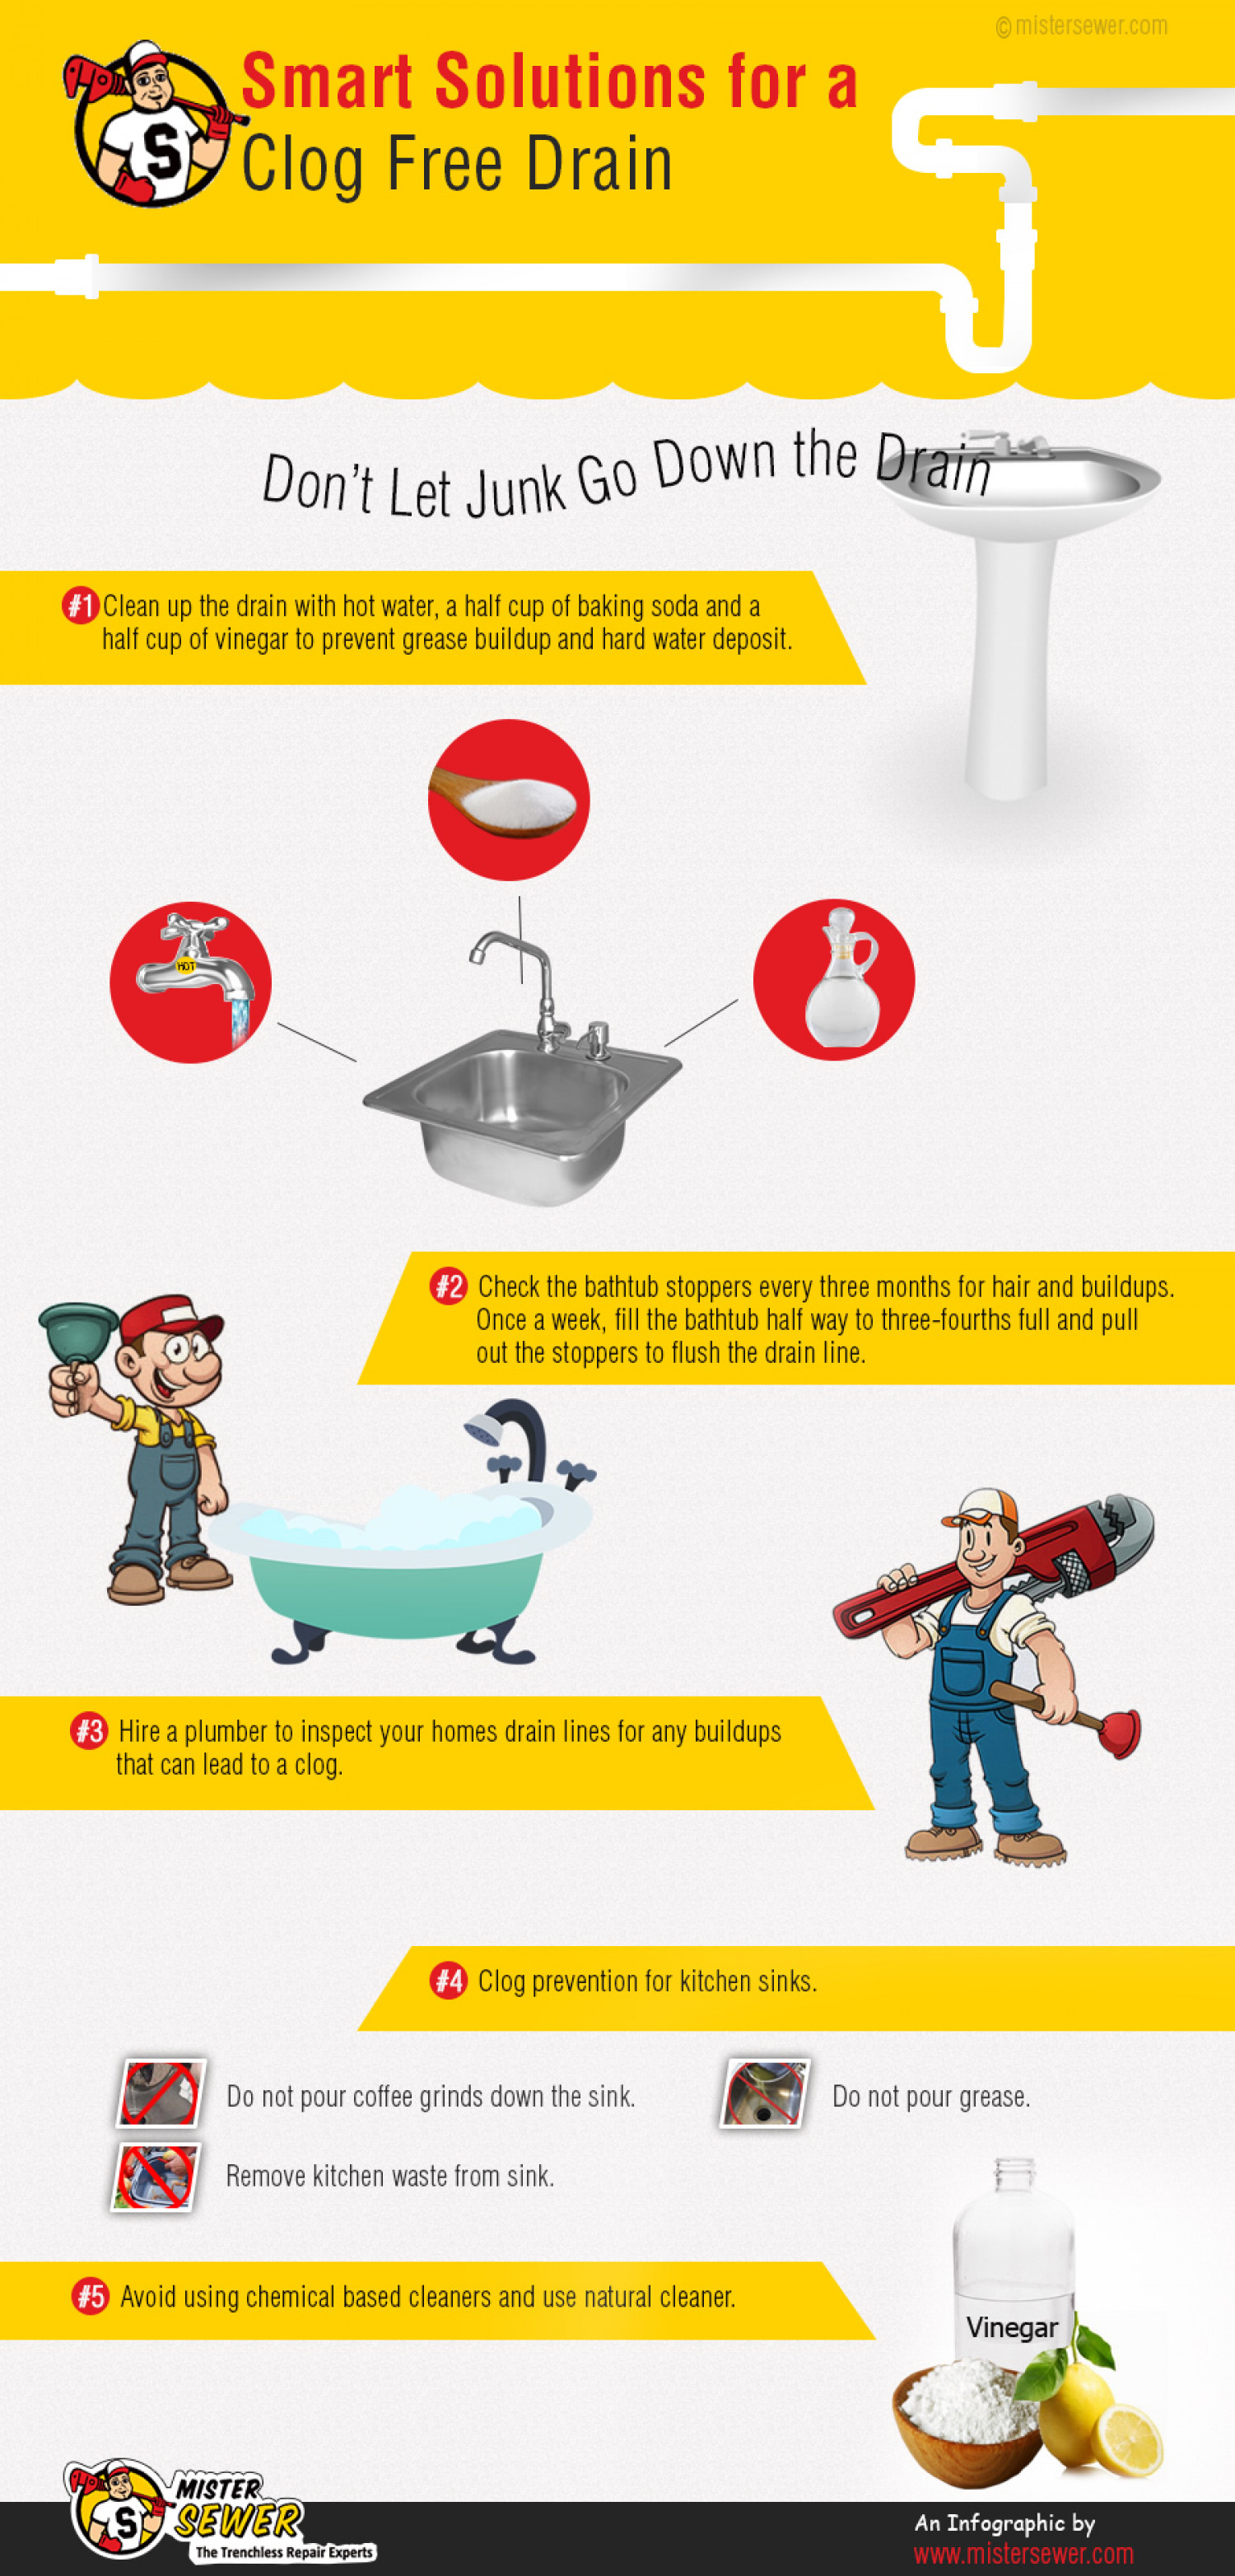 Smart Solutions for a Clog Free Drain  Infographic